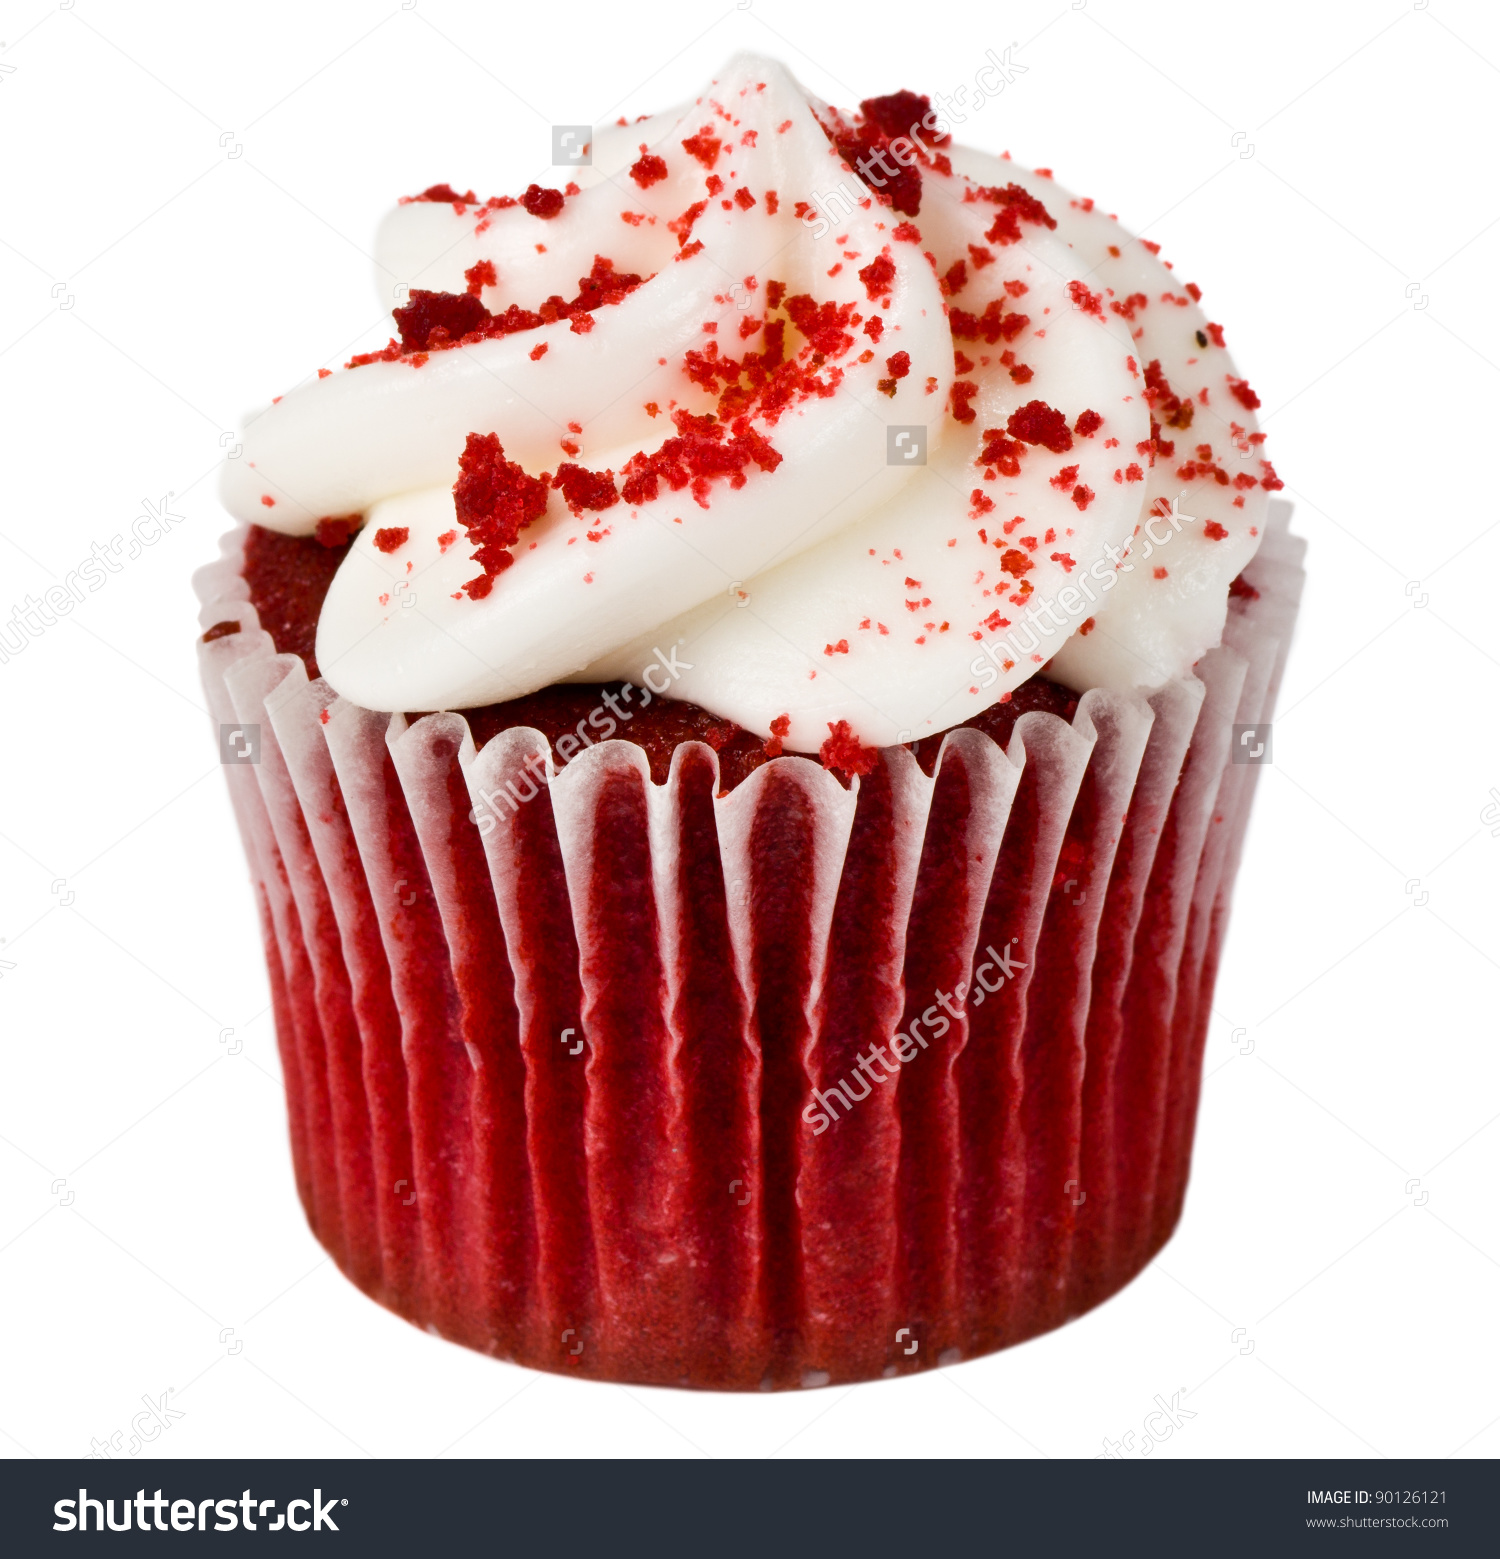 red velvet clipart #19